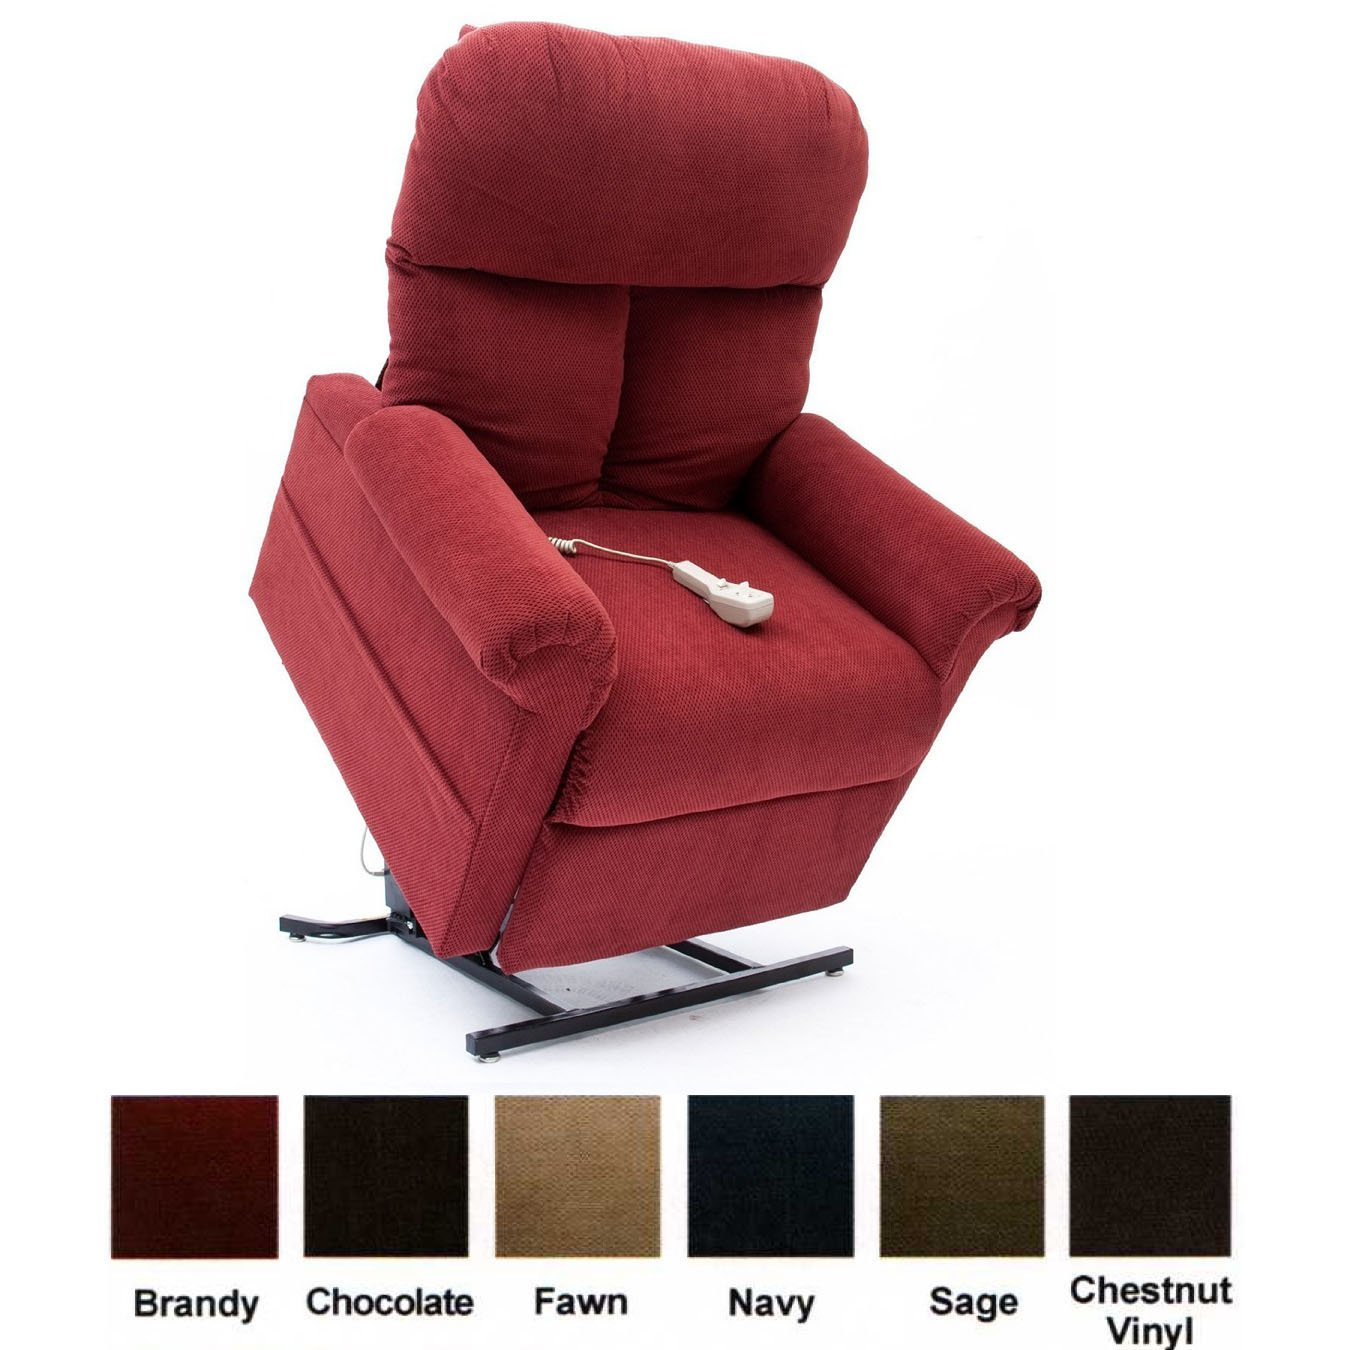 Amazon.com Mega Motion Power Easy Comfort Lift Chair Lifting Recliner LC-100 with Heat and Massage Infinite Position Rising Electric Chaise Lounger ...  sc 1 st  Amazon.com : lifting recliner chairs - islam-shia.org